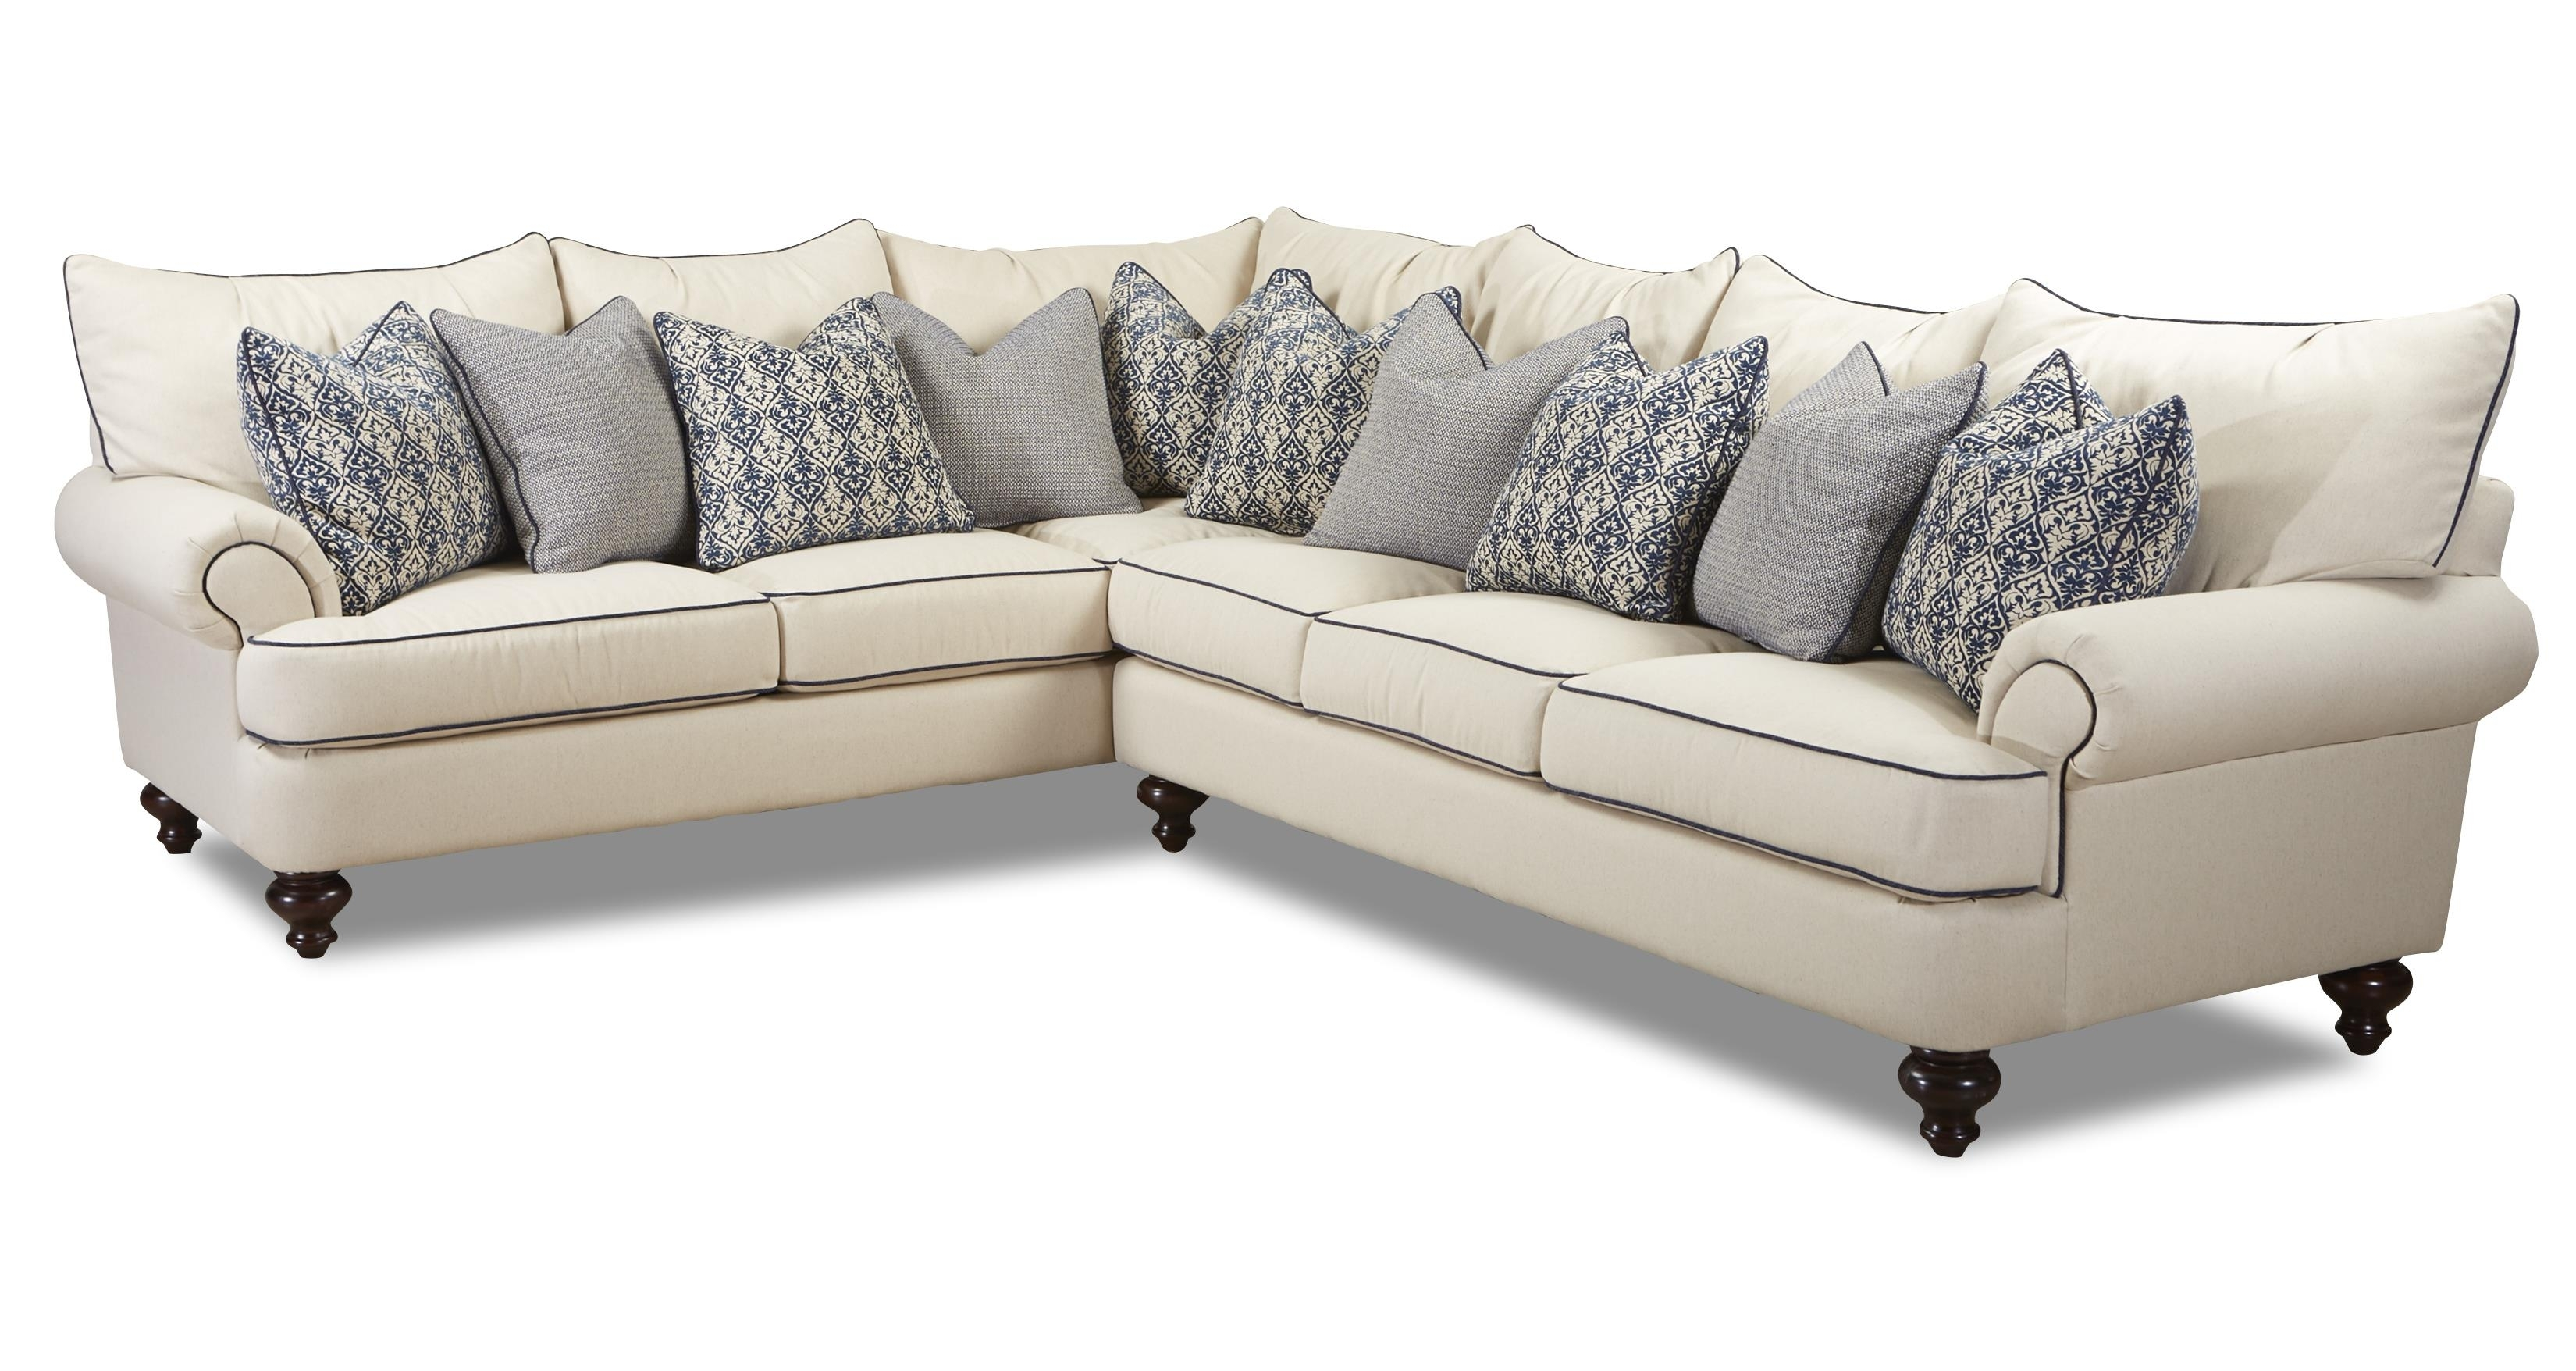 Shabby Chic Sectional Sofaklaussner | Wolf And Gardiner Wolf Within Shabby Chic Sofas (Image 8 of 10)